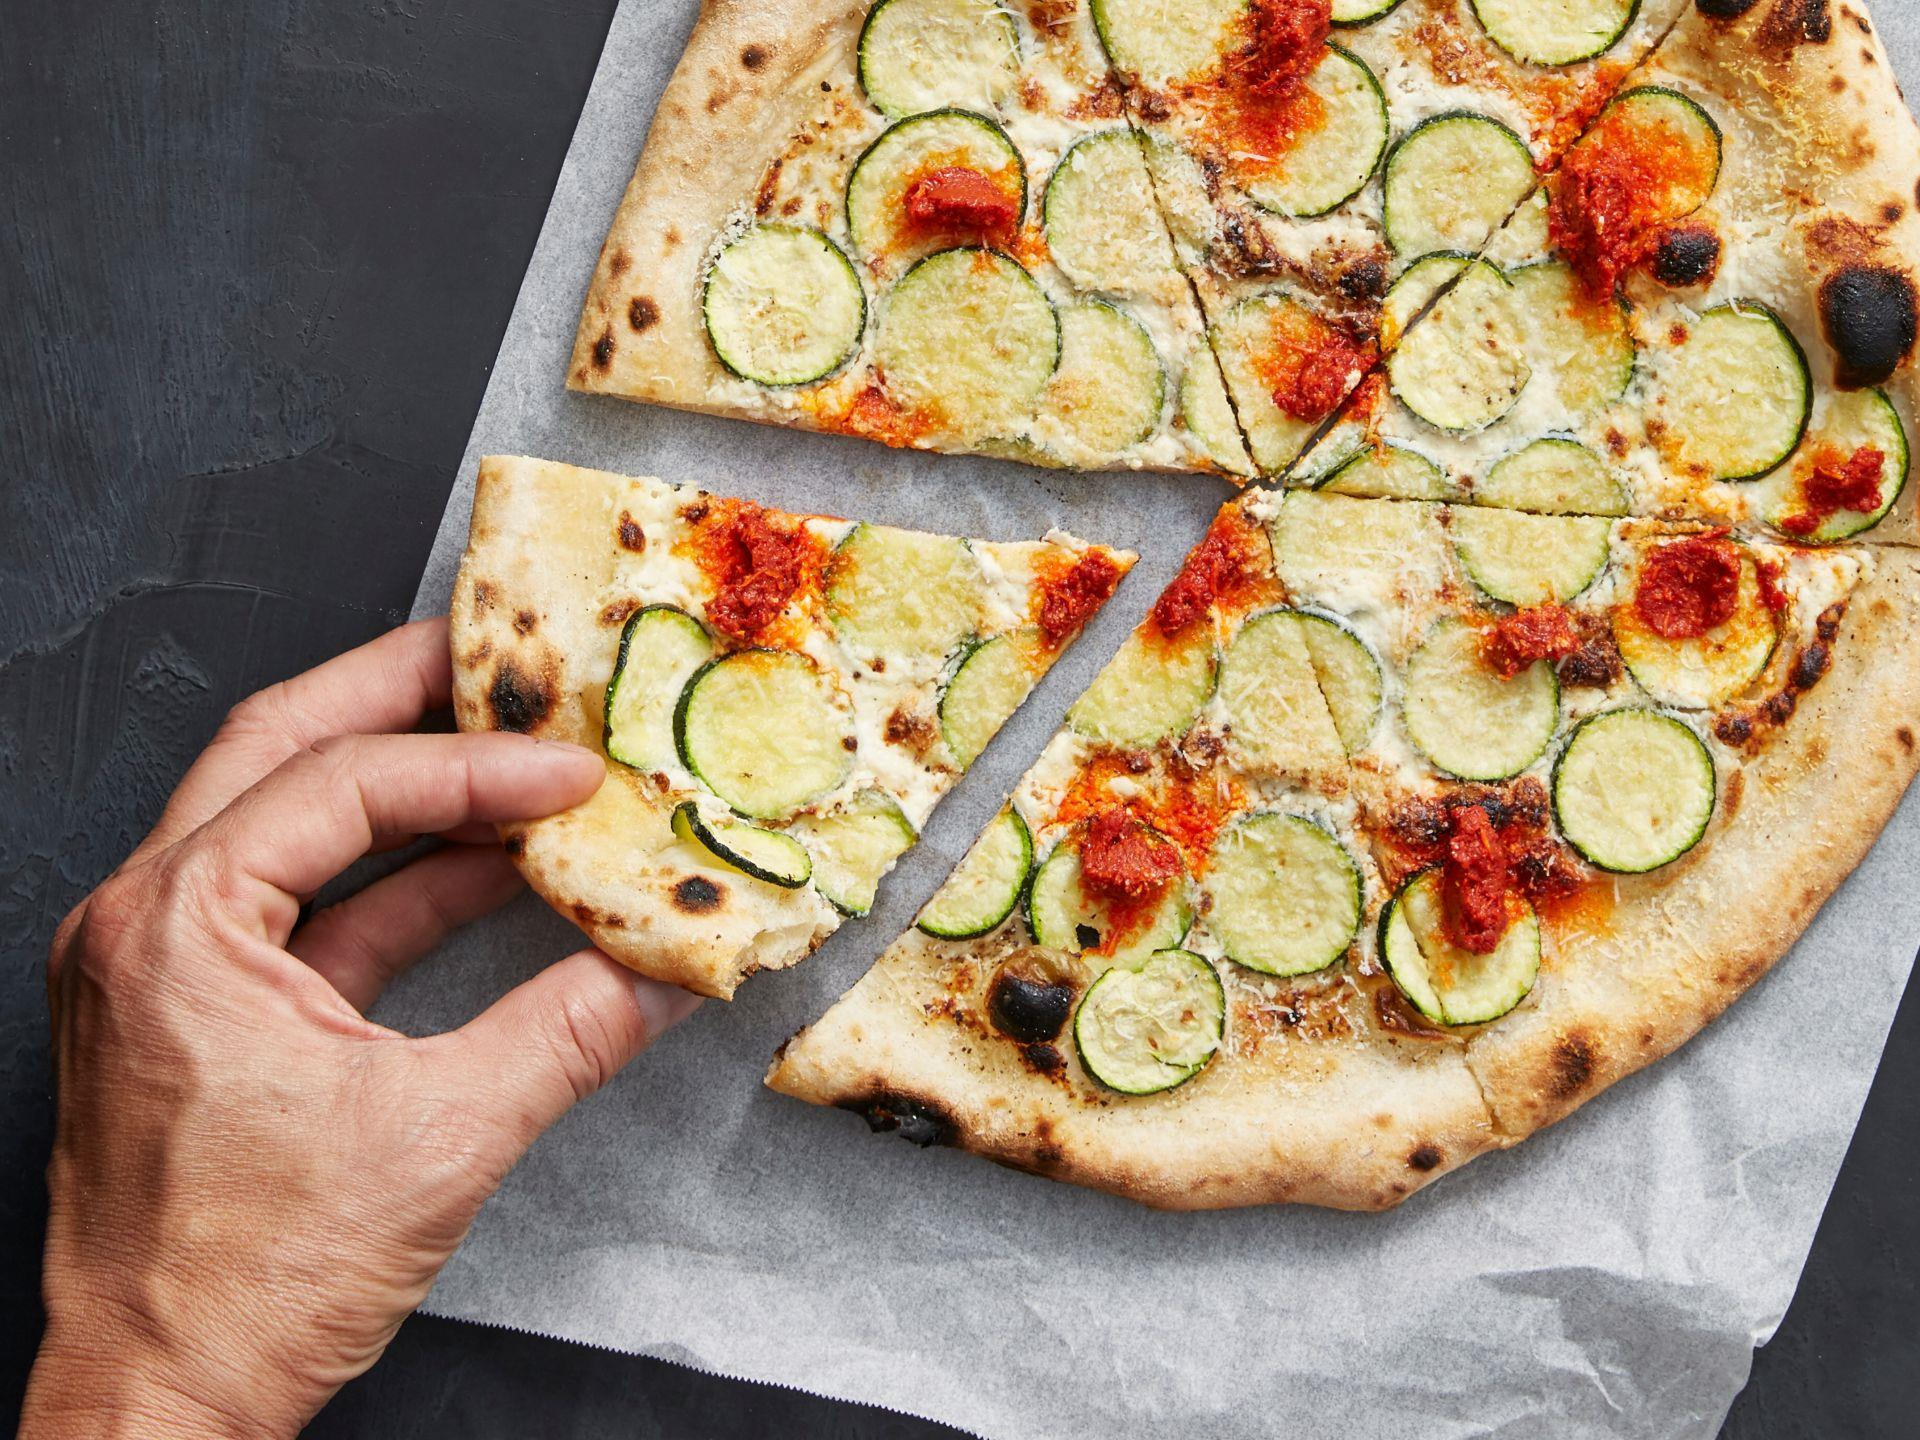 Hand holding a slice of zucchini pizza